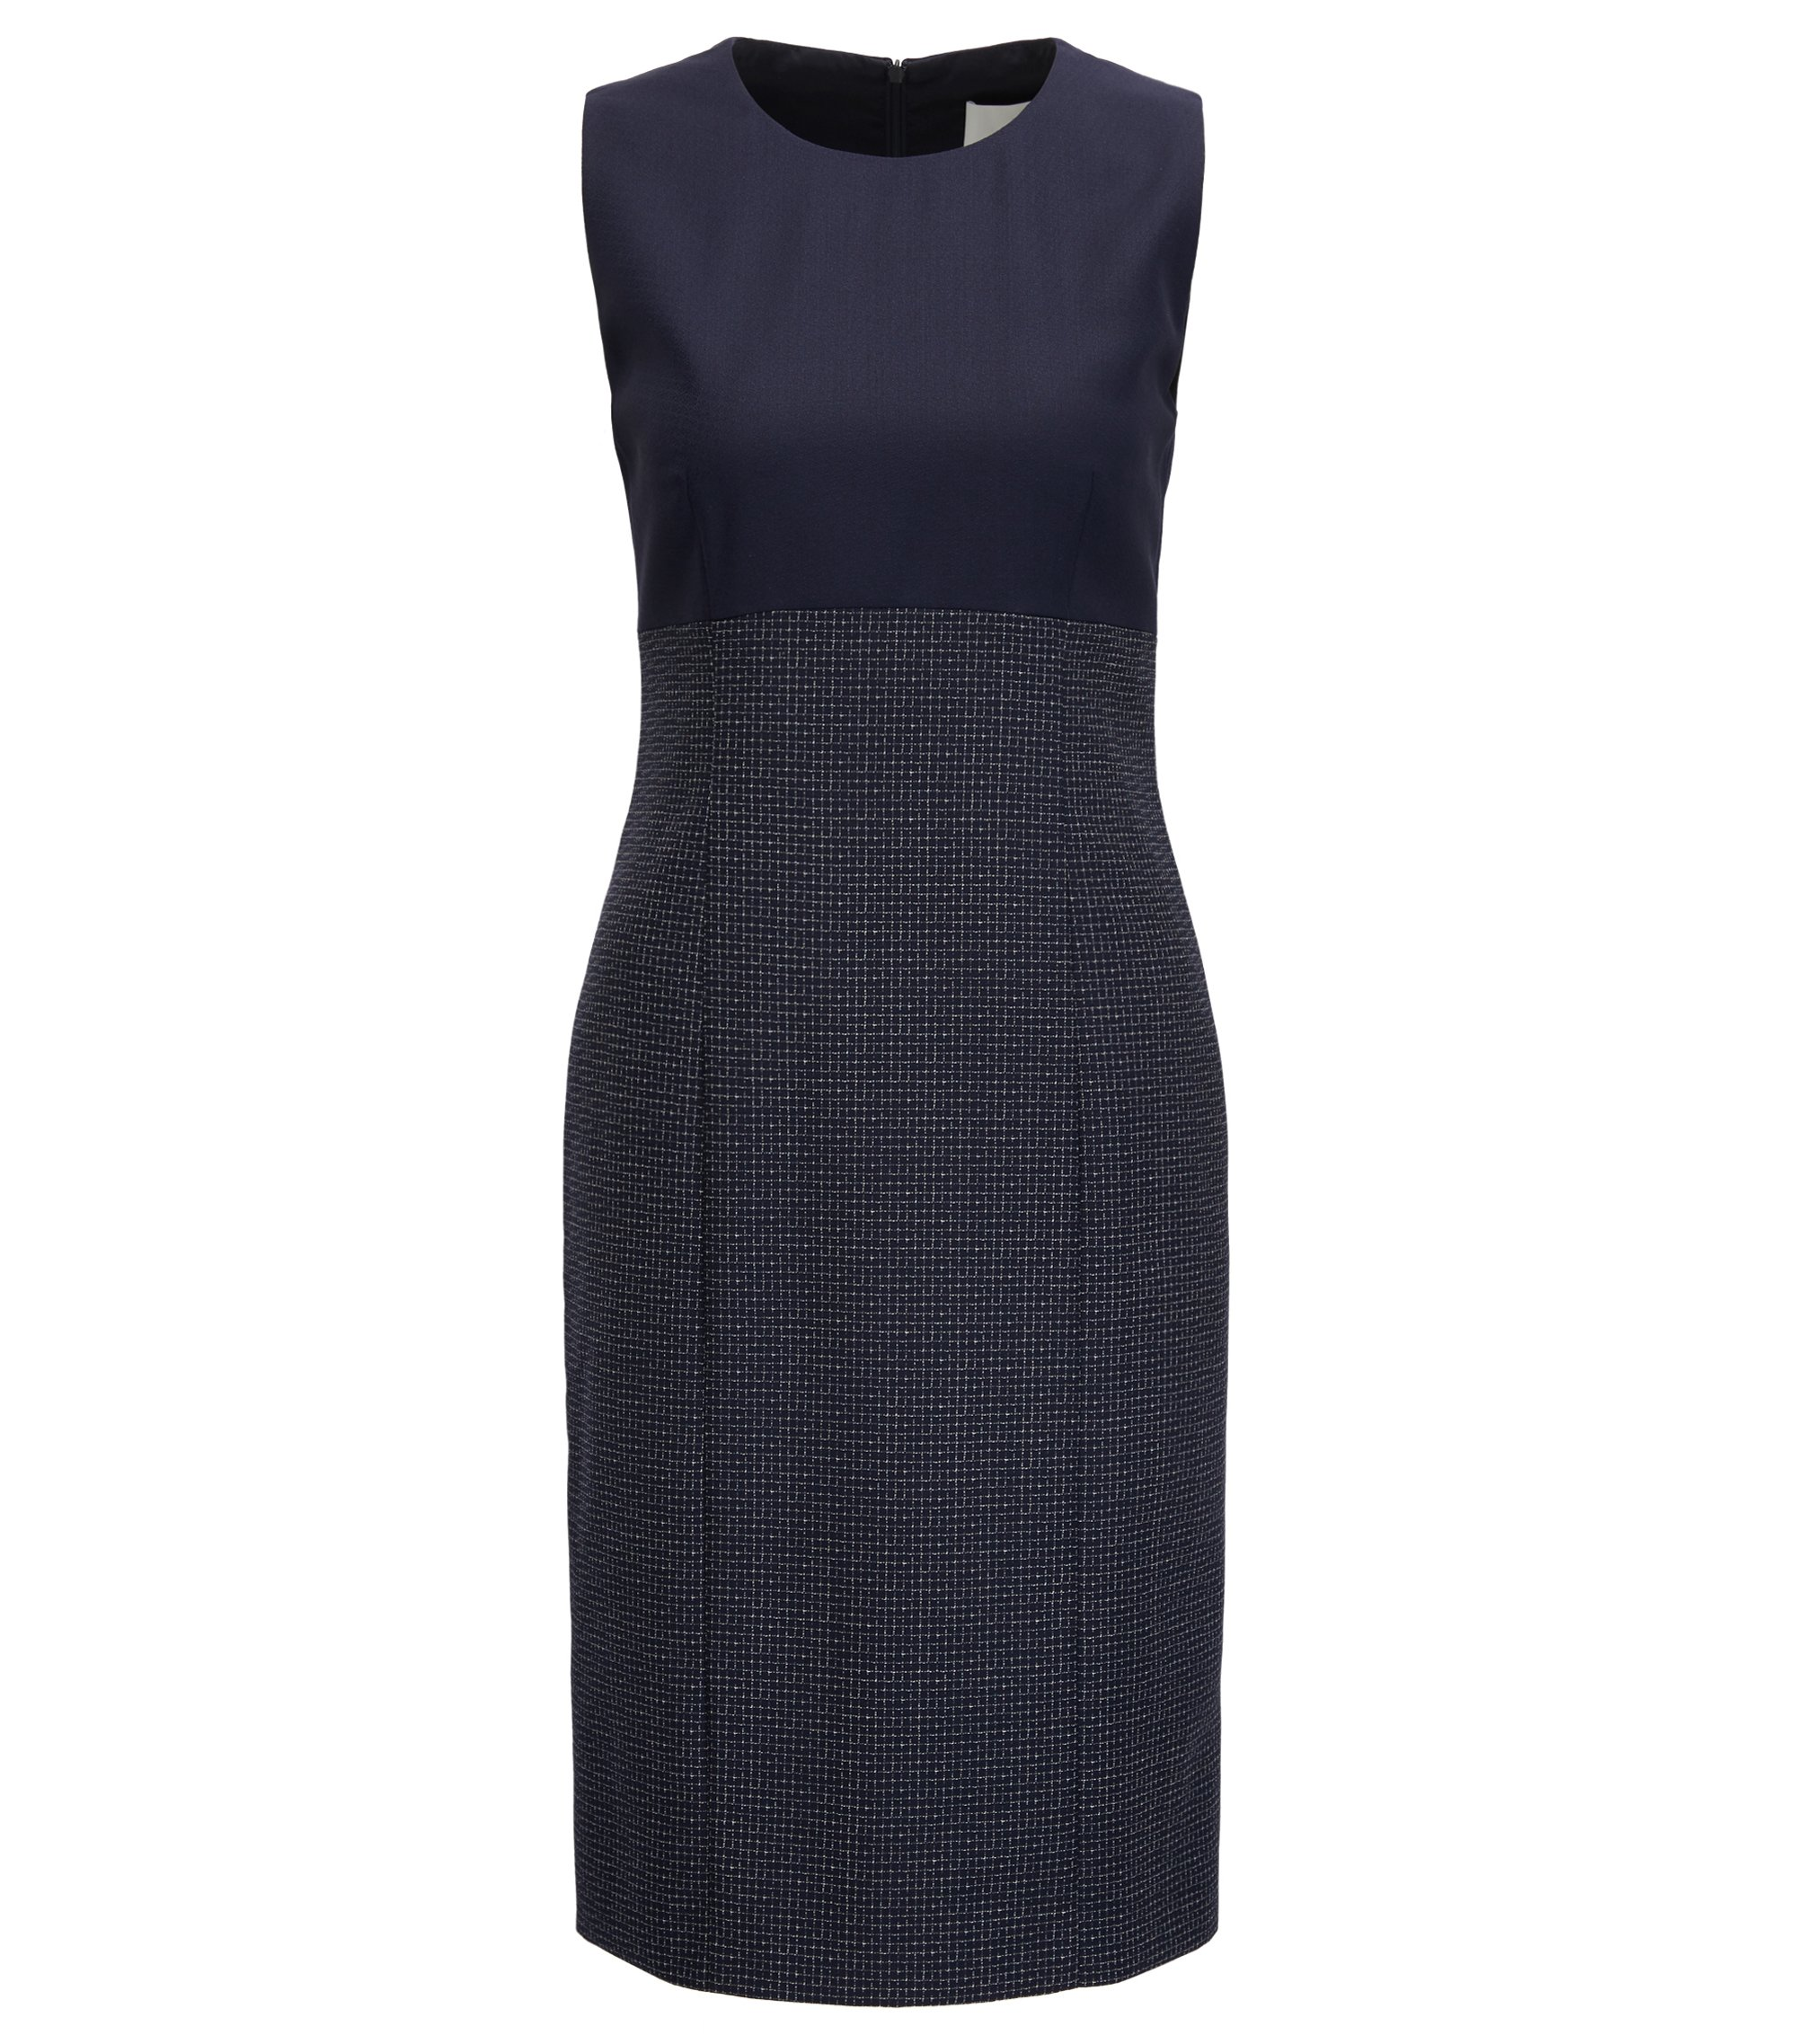 Wool Sheath Dress | Dibena, Patterned